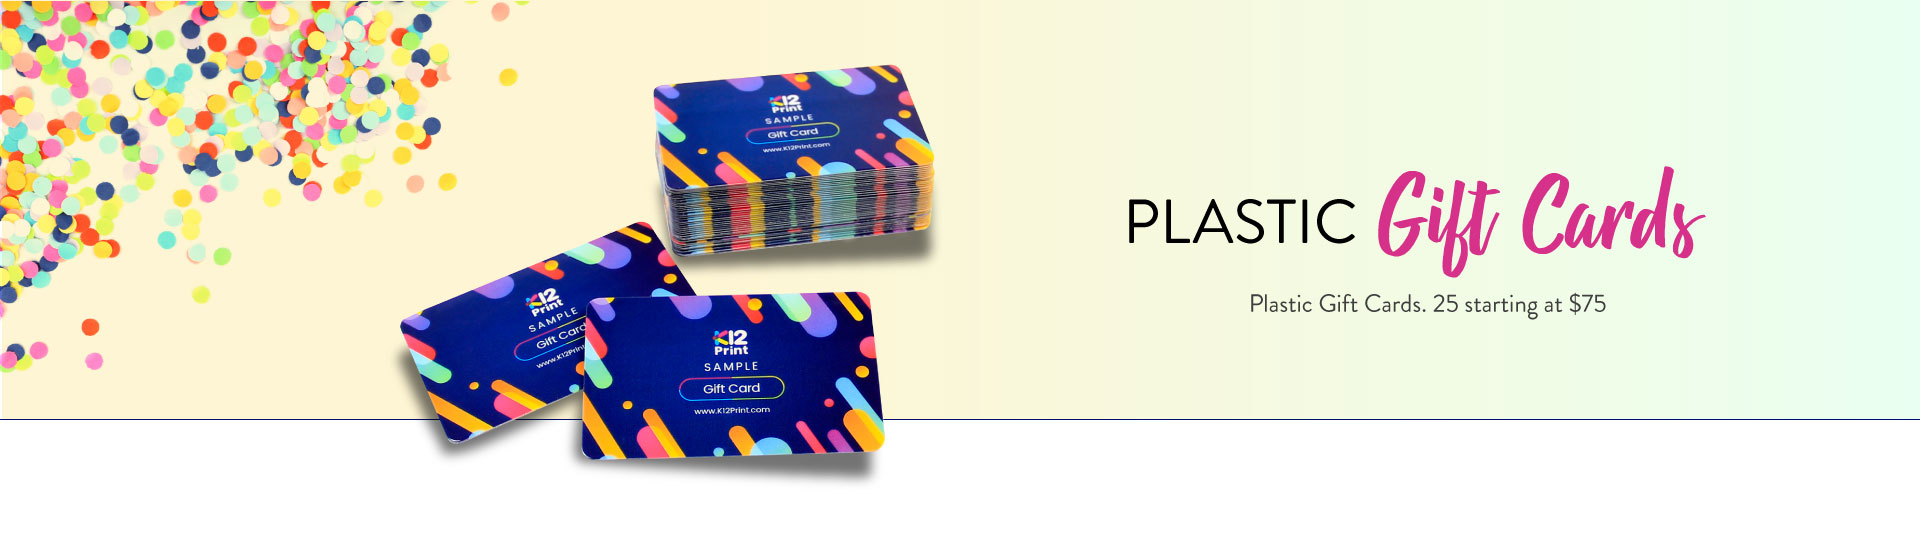 Plastic Gift Cards Banner